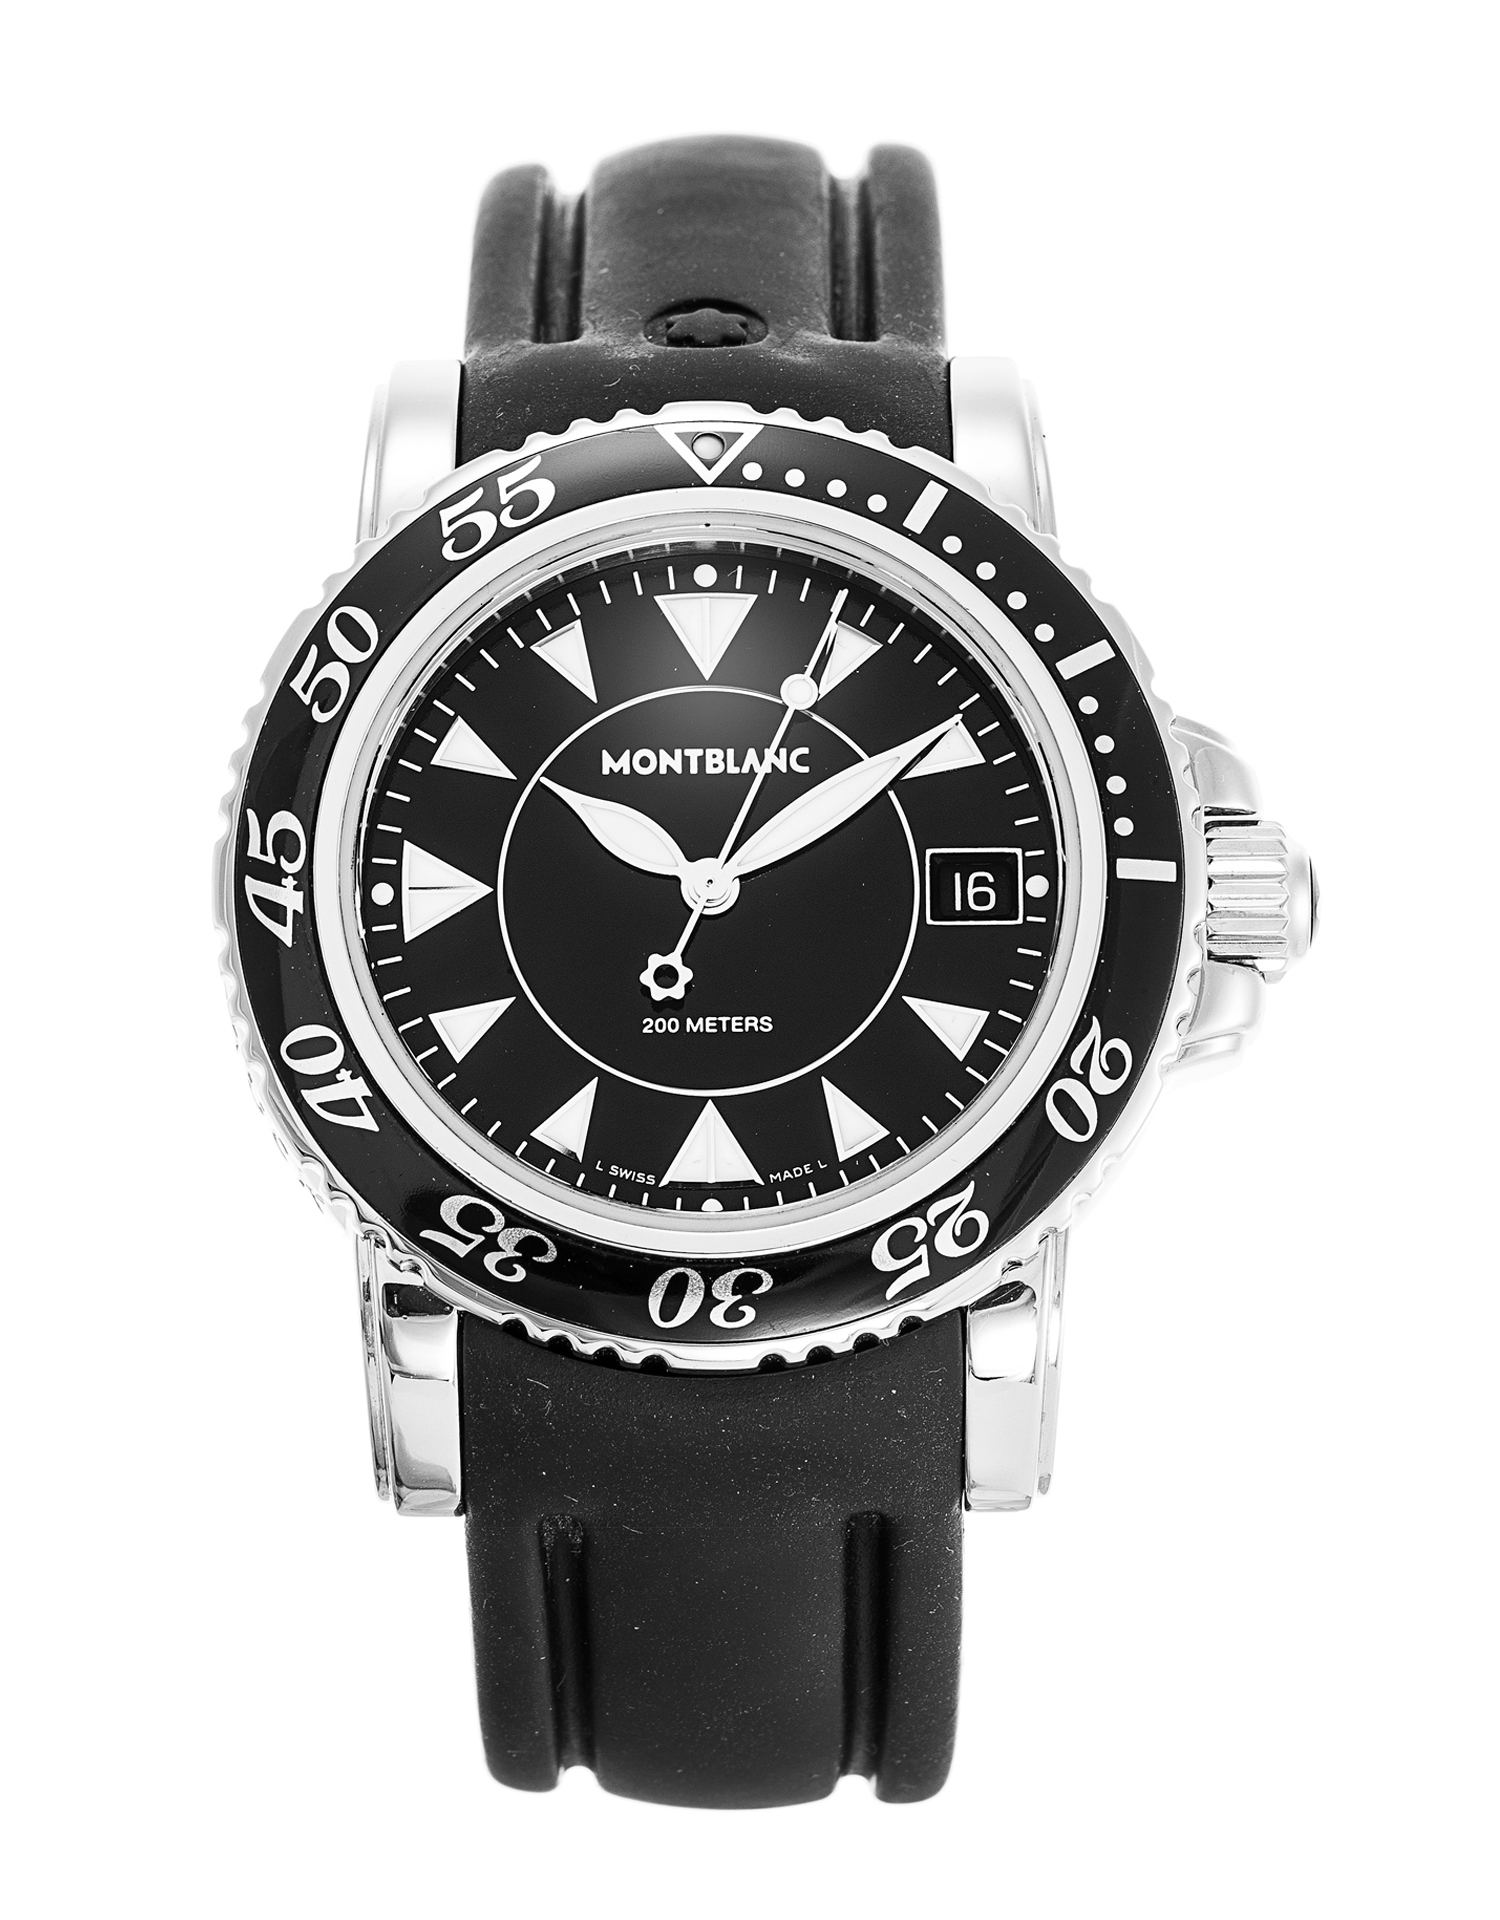 4234313e340 Montblanc Sport 7037 Watch | Watchfinder & Co.